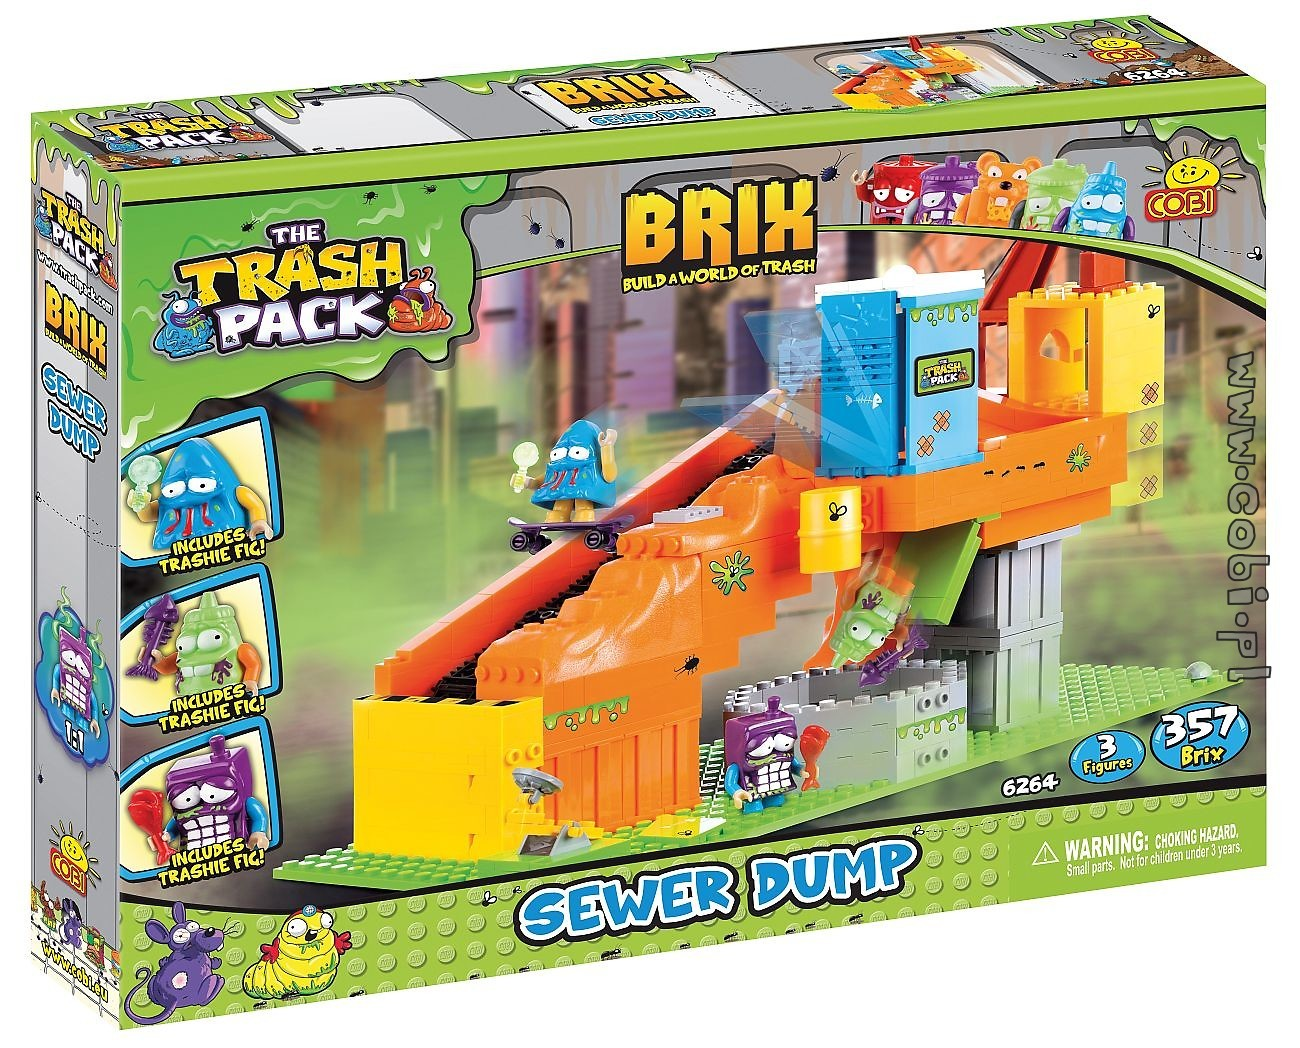 Trash Pack Sewer Dump Play Doh Toy Review Playset Batman Cars Angry Birds Star Wars Dailymotion